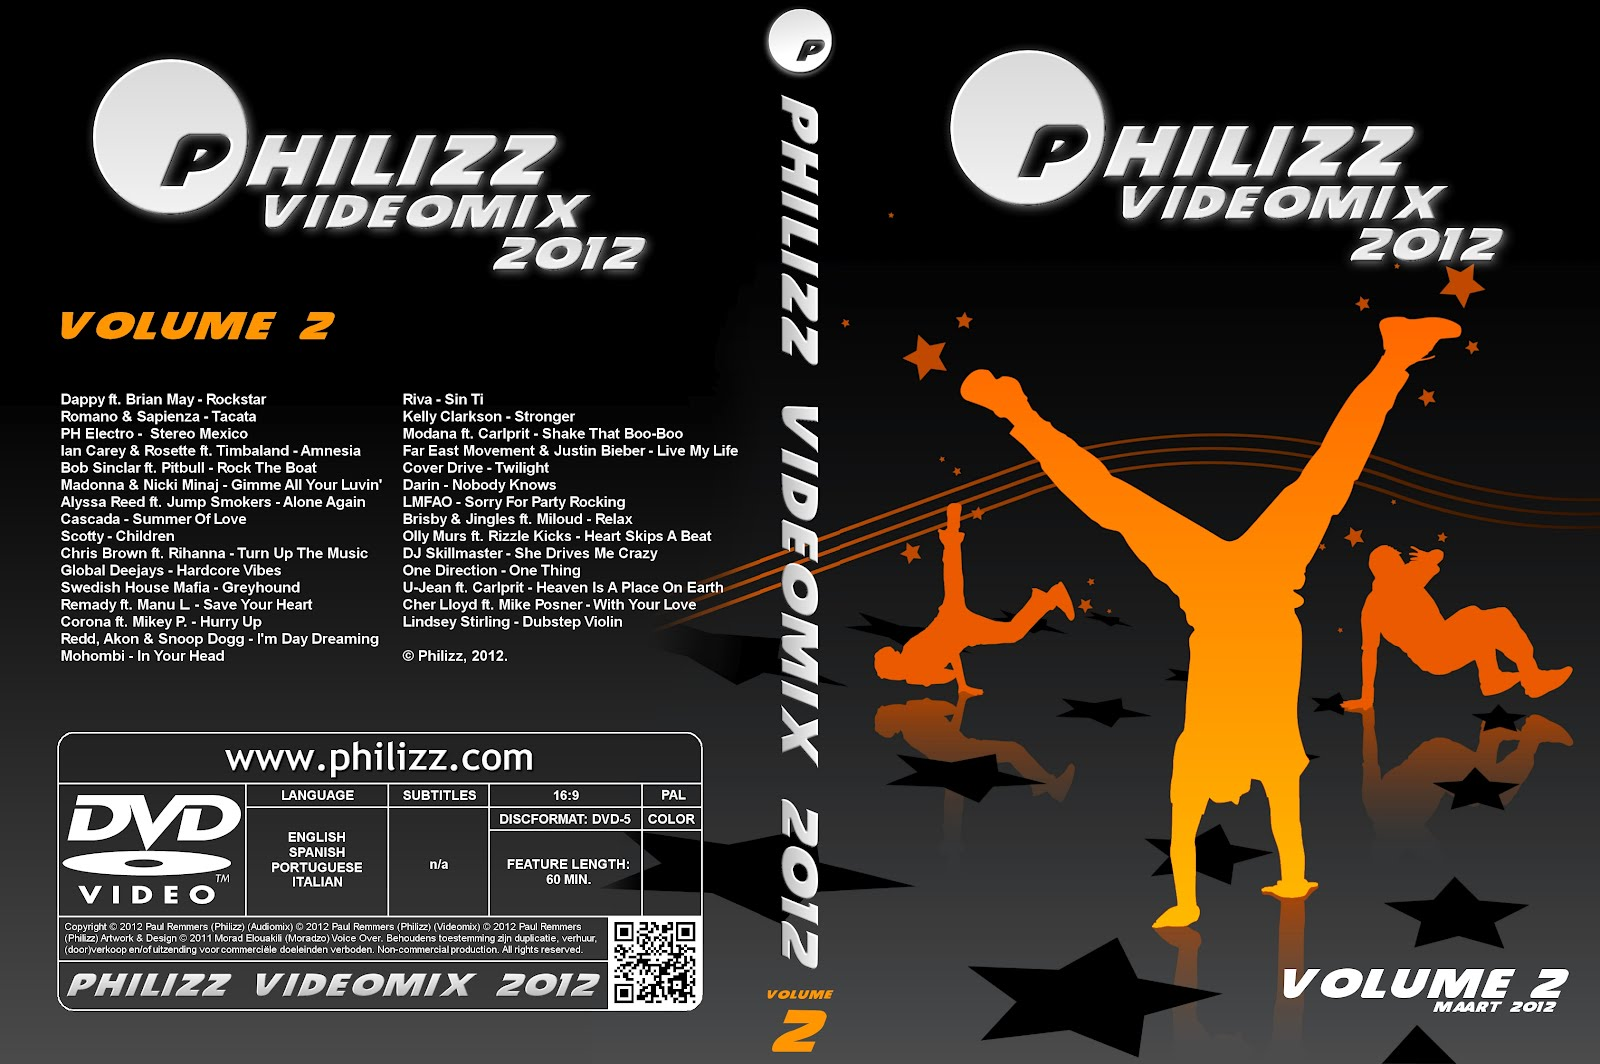 Philizz Videomix 2012 - Volume 2